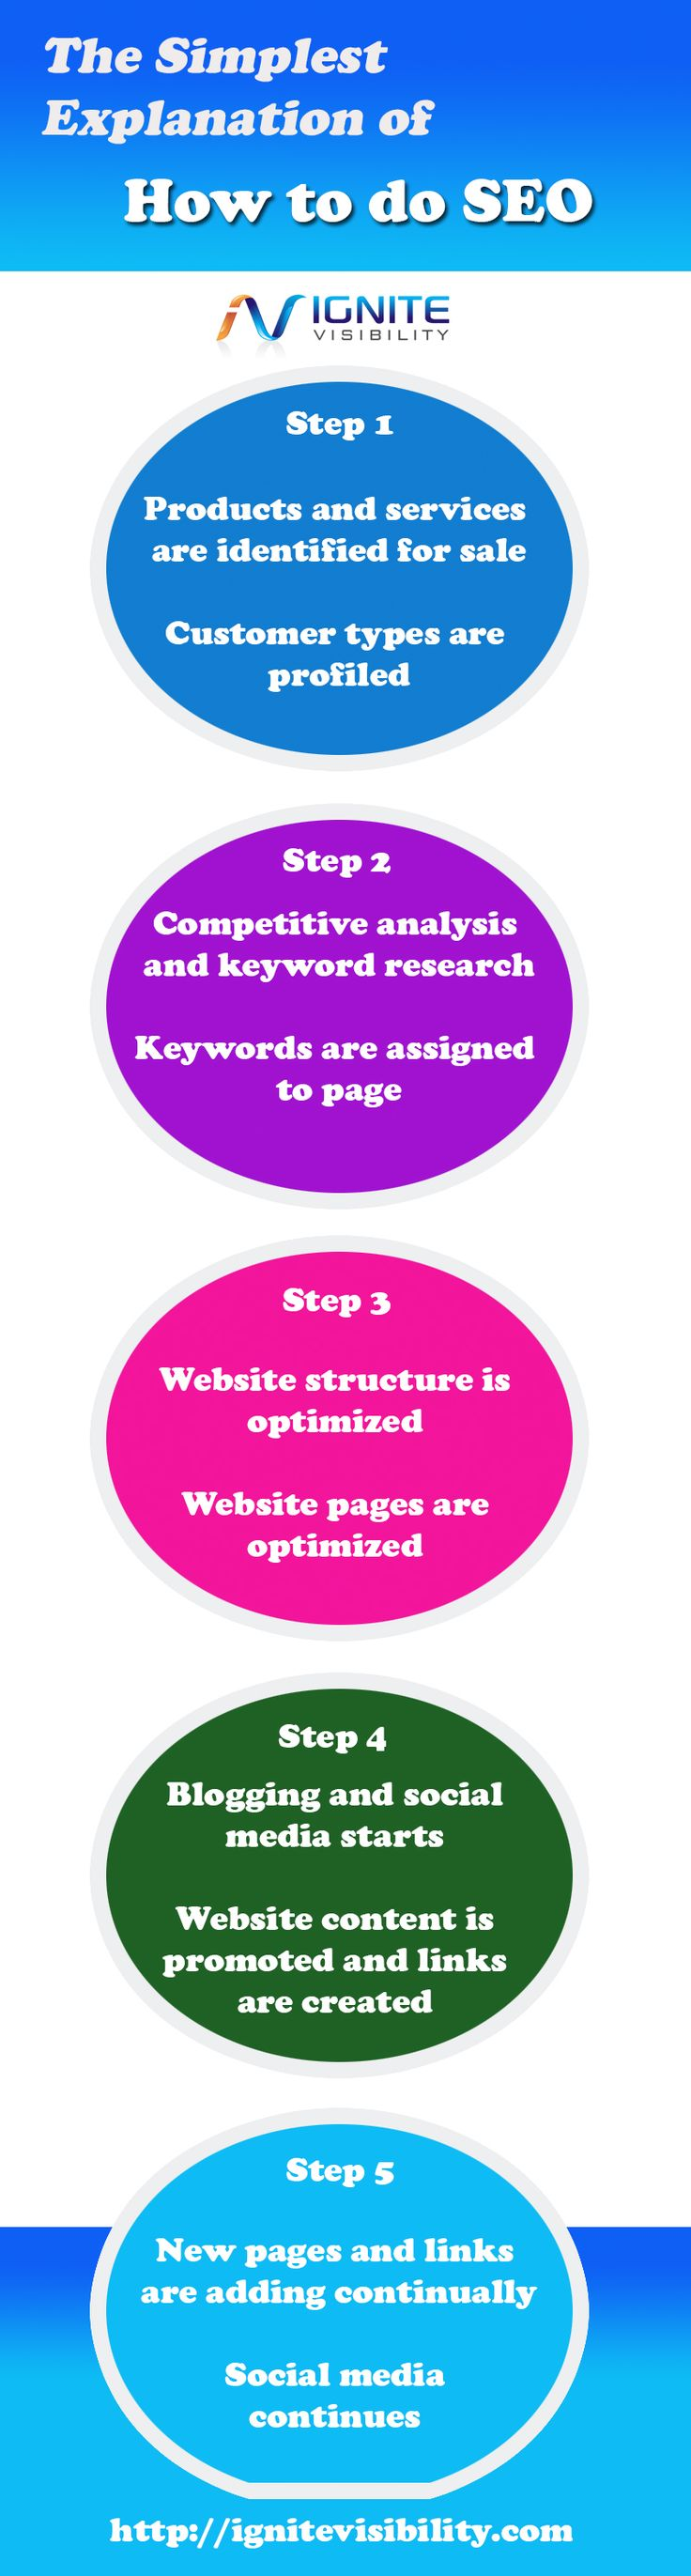 The Simplest Explanation of #SEO Online